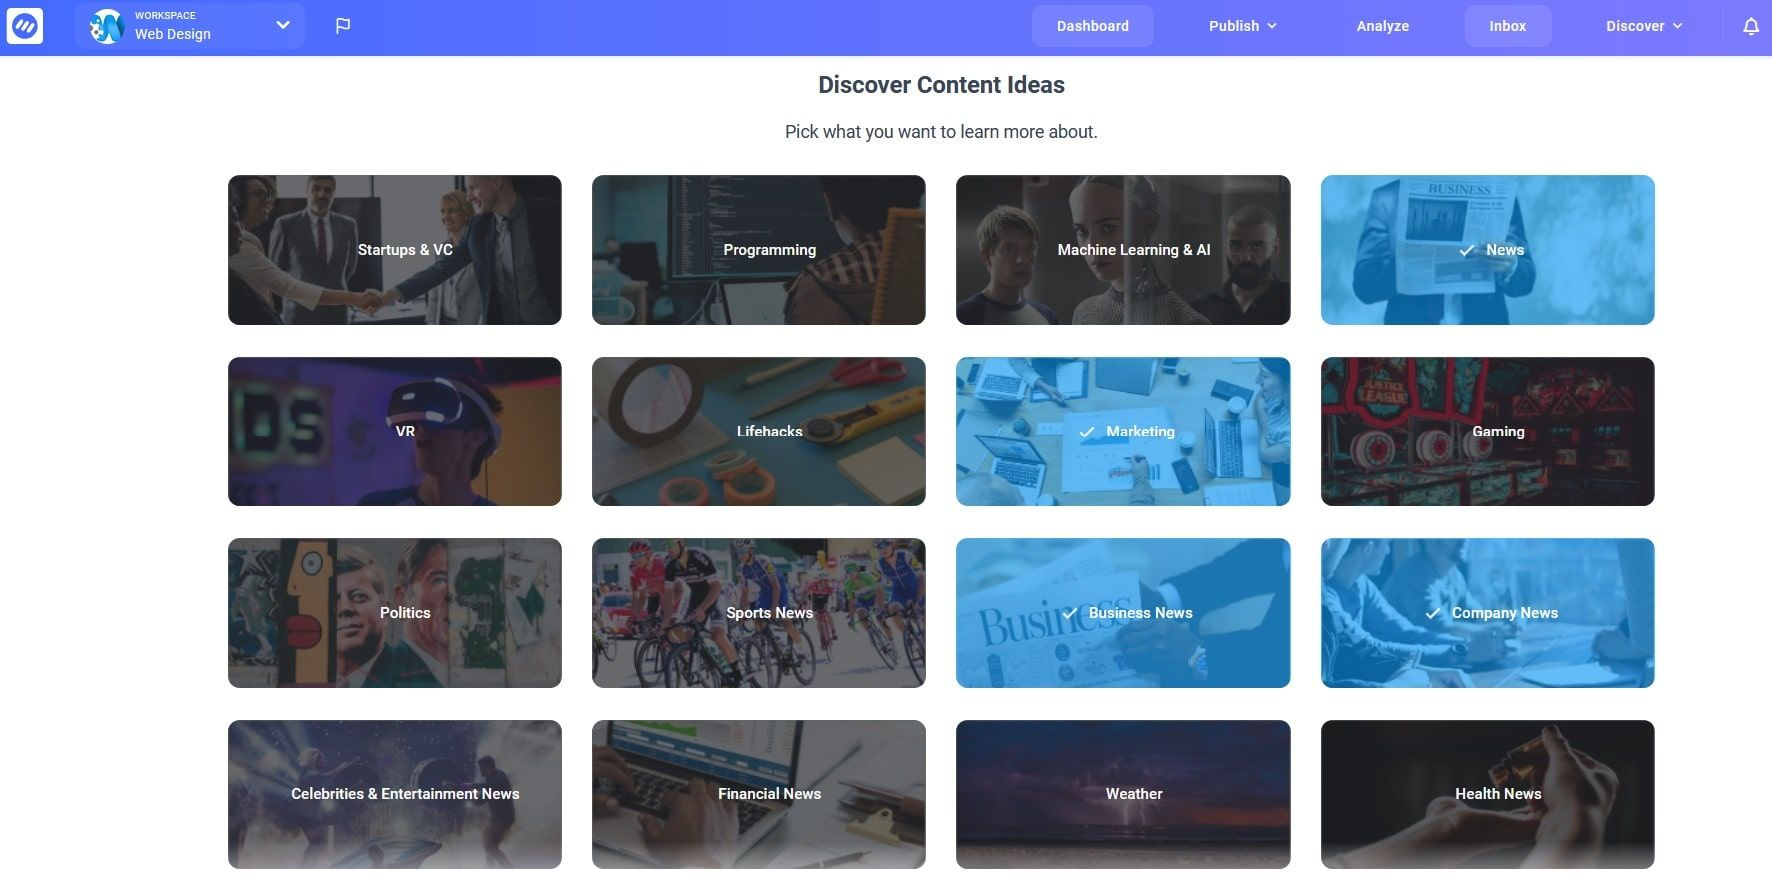 Choose topics that interest you in ContentStudio and track trends